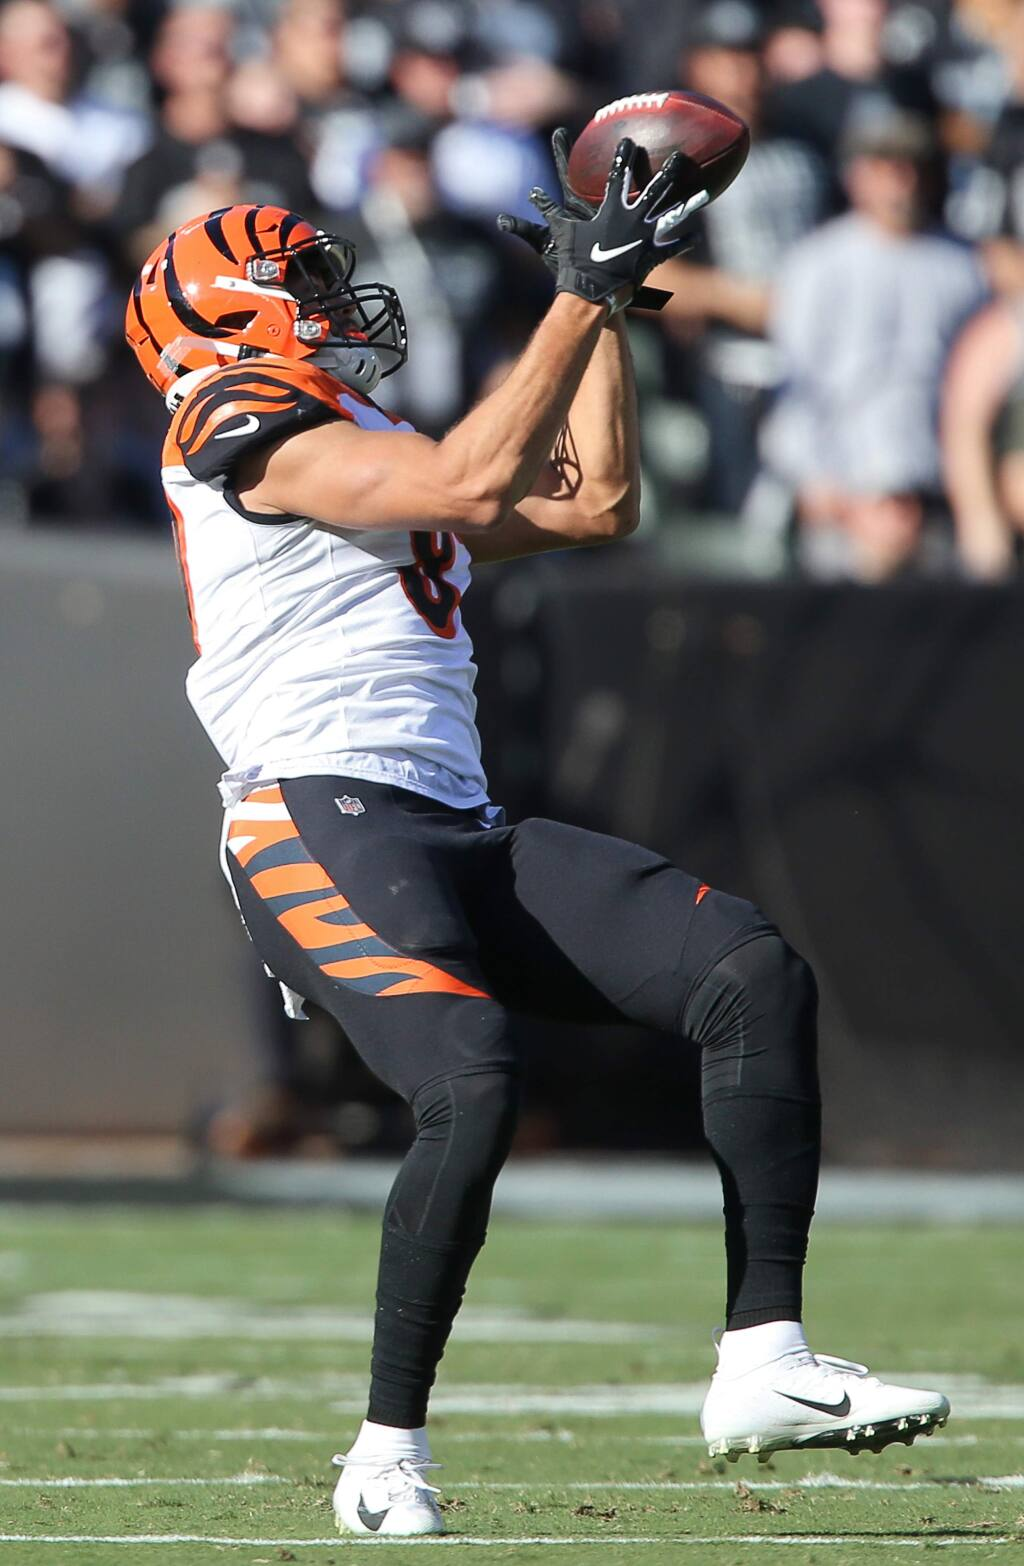 Cincinnati Bengals tight end C.J. Uzomah bobbles the ball during a catch against the Oakland Raiders, during their game in Oakland on Sunday, November 17, 2019. (Christopher Chung/ The Press Democrat)